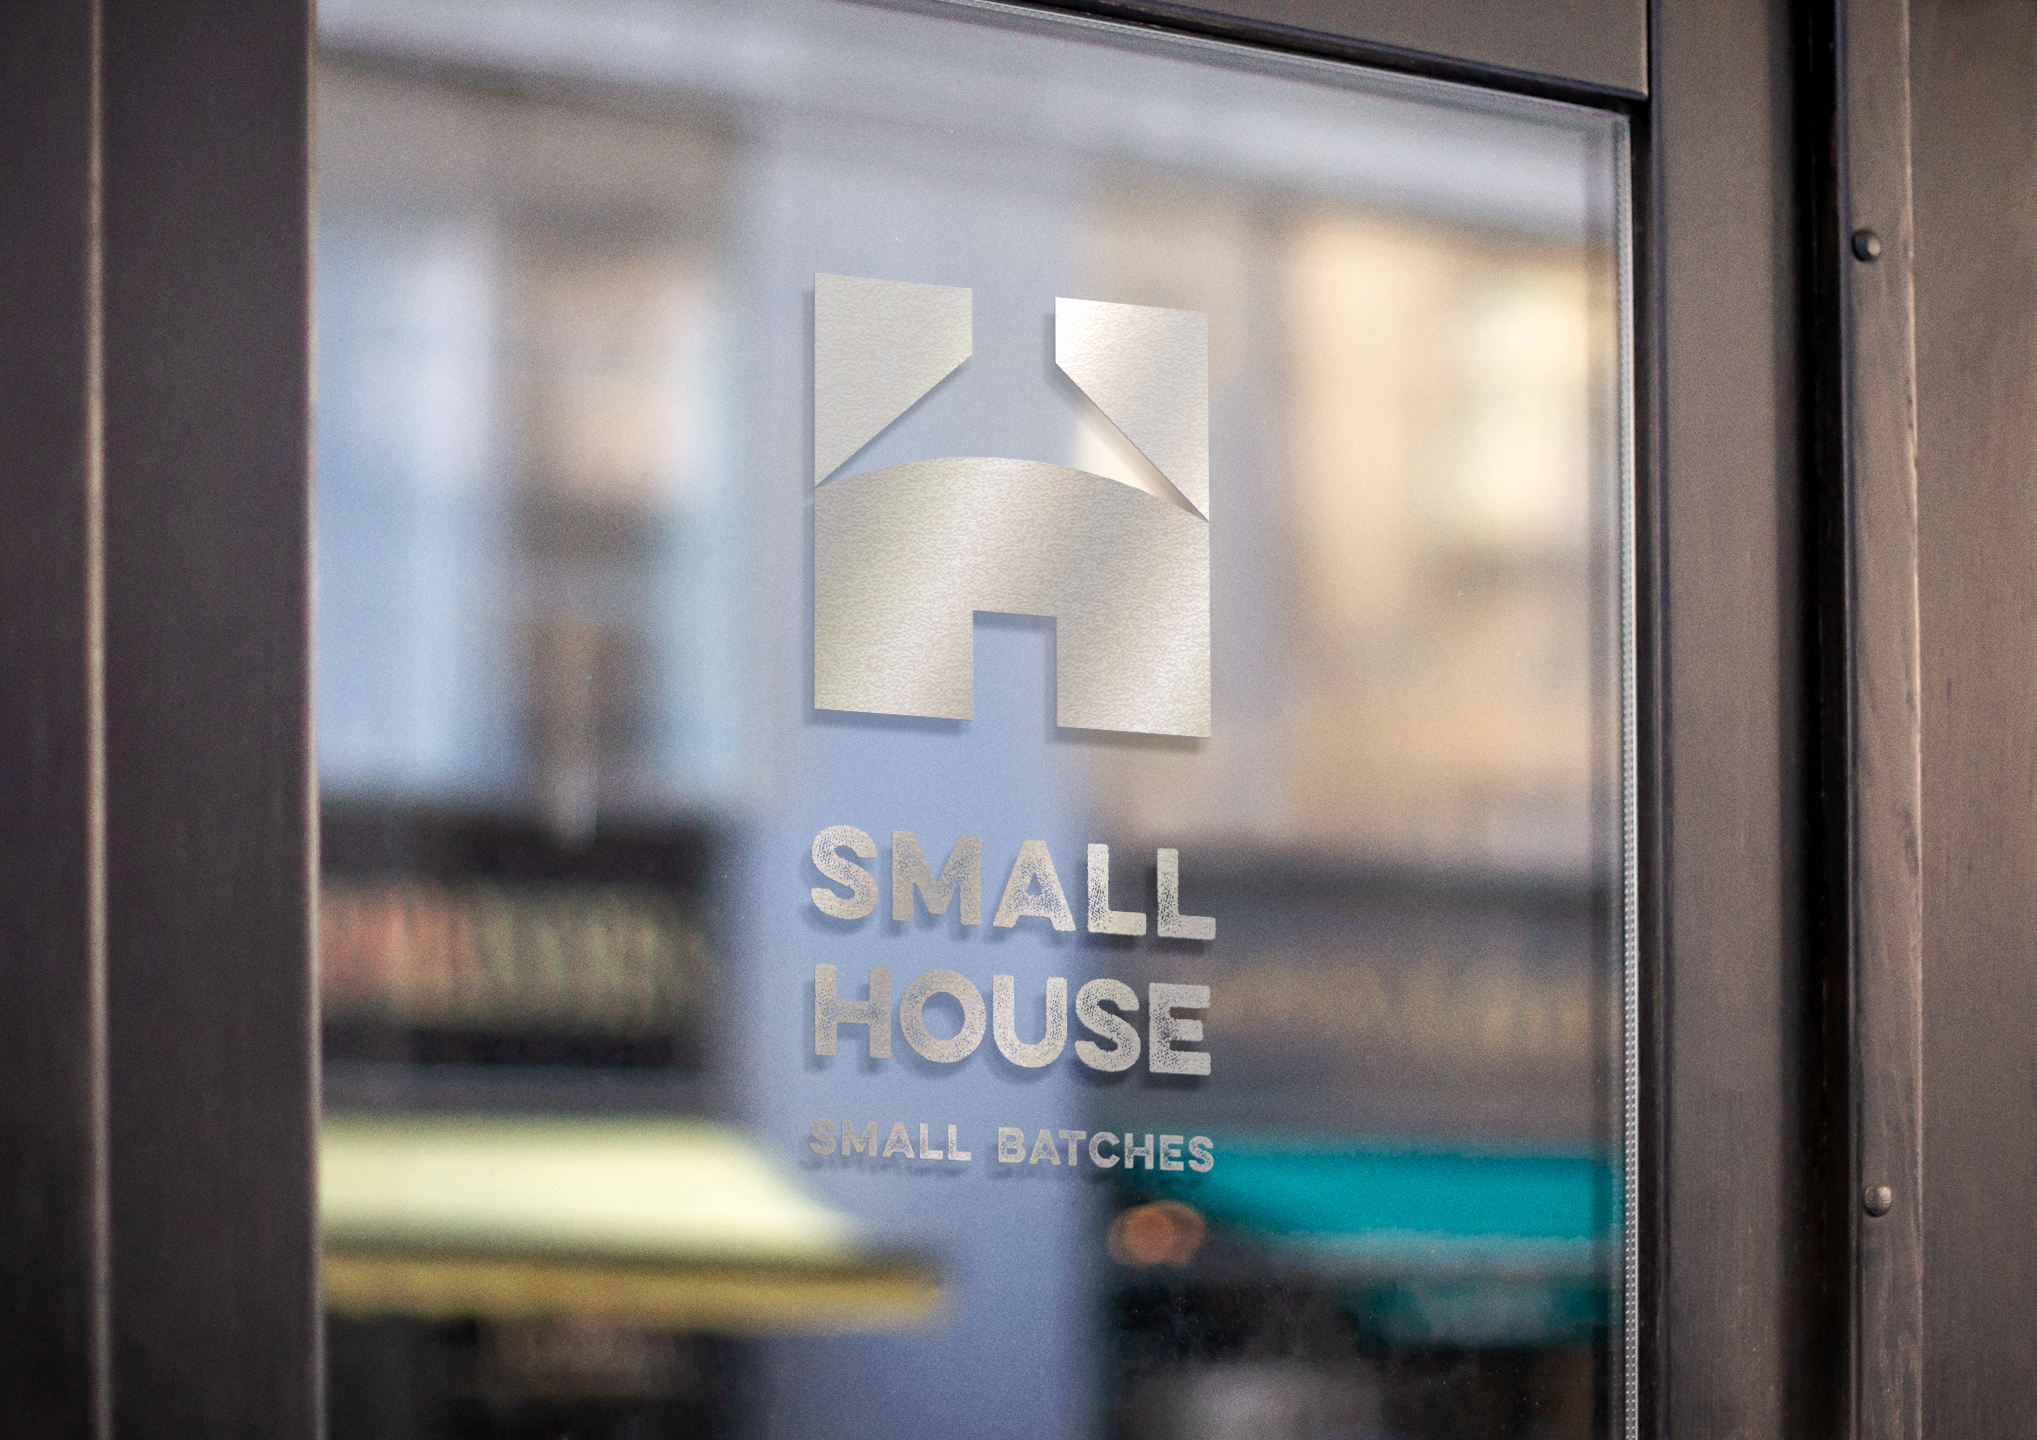 Graphic Design / Small House Logo / Brand Identity and Window Design